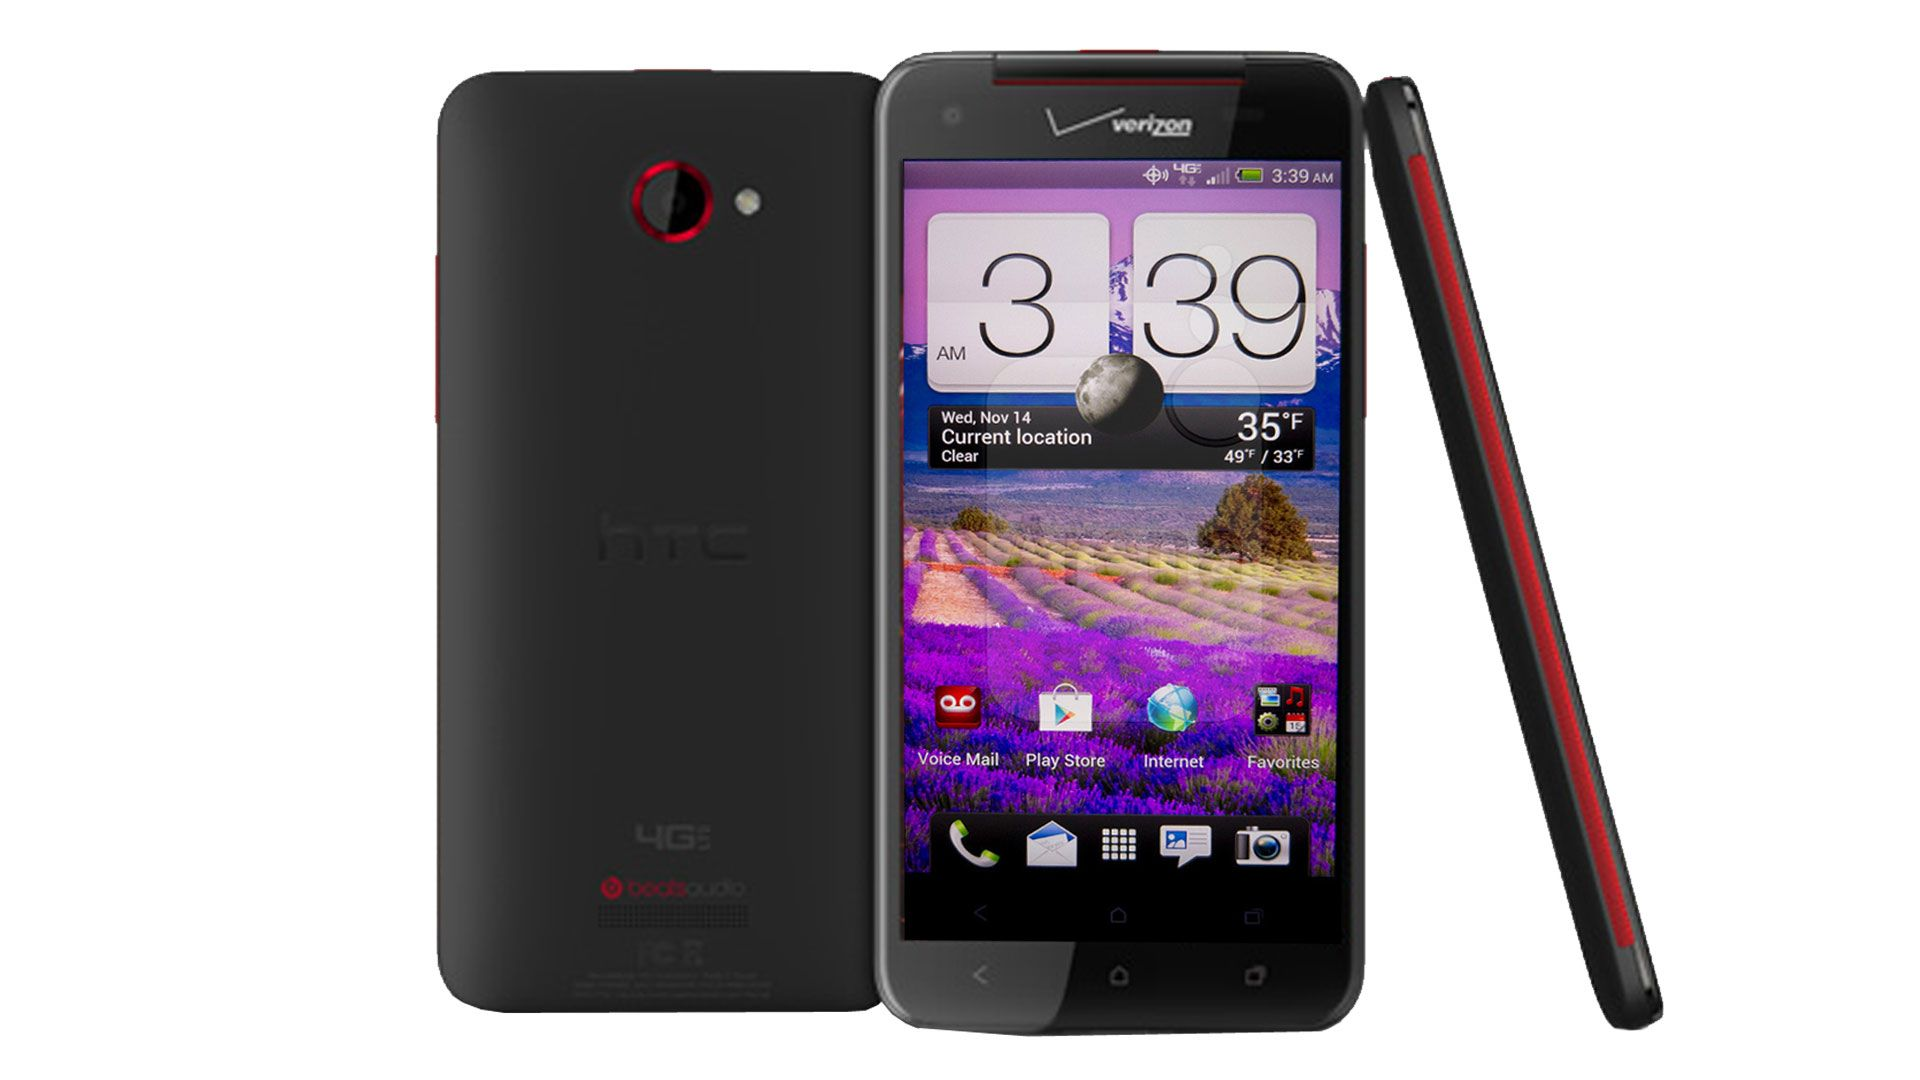 htc droid dna the fruit has a camera in front of two and the front sections with the front which has a size of mp 30 fps and the size of